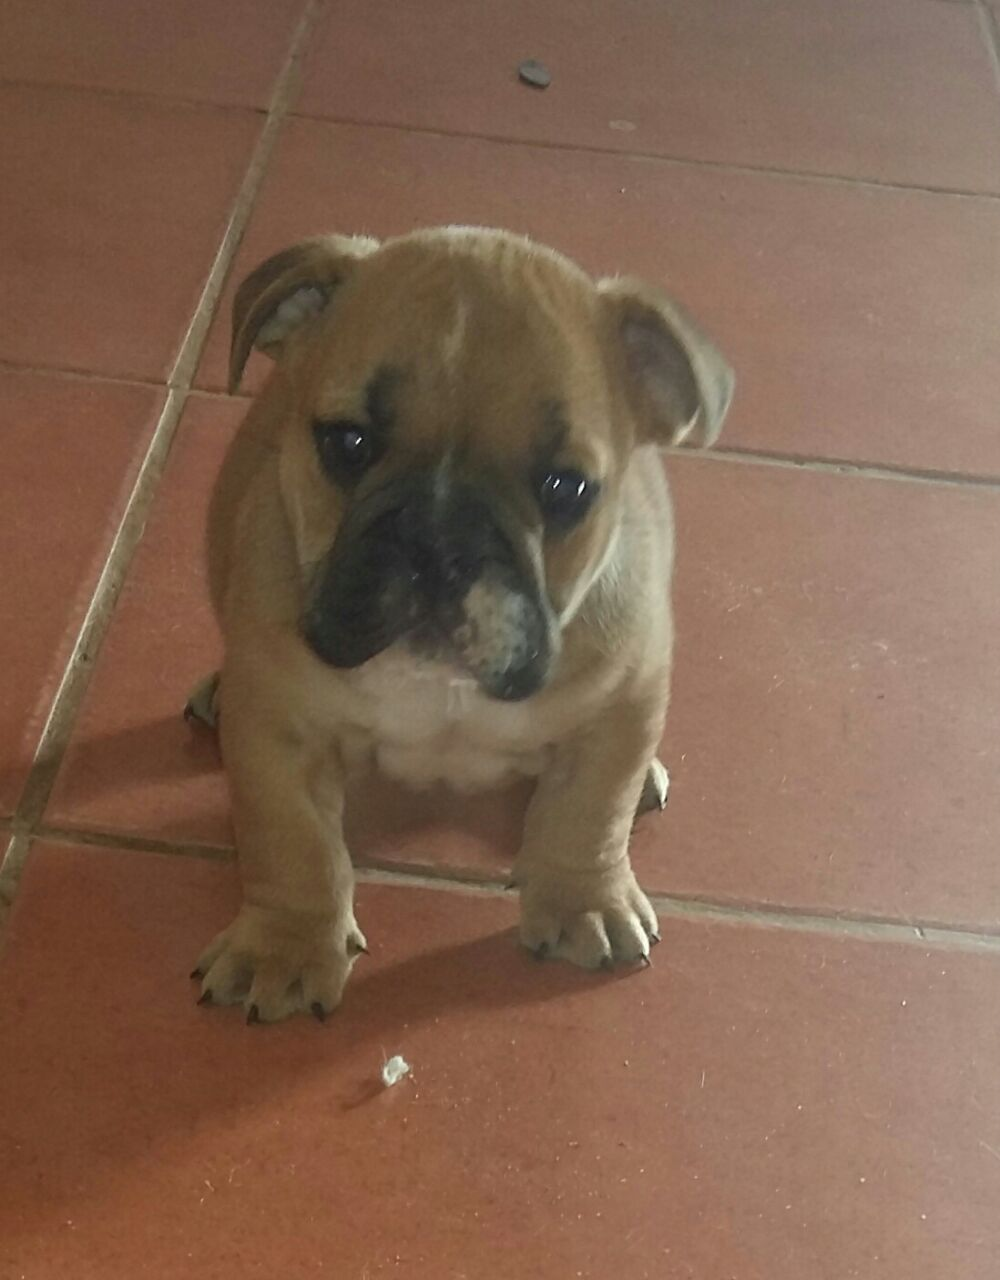 English Bulldog puppies for sale | Junk Mail